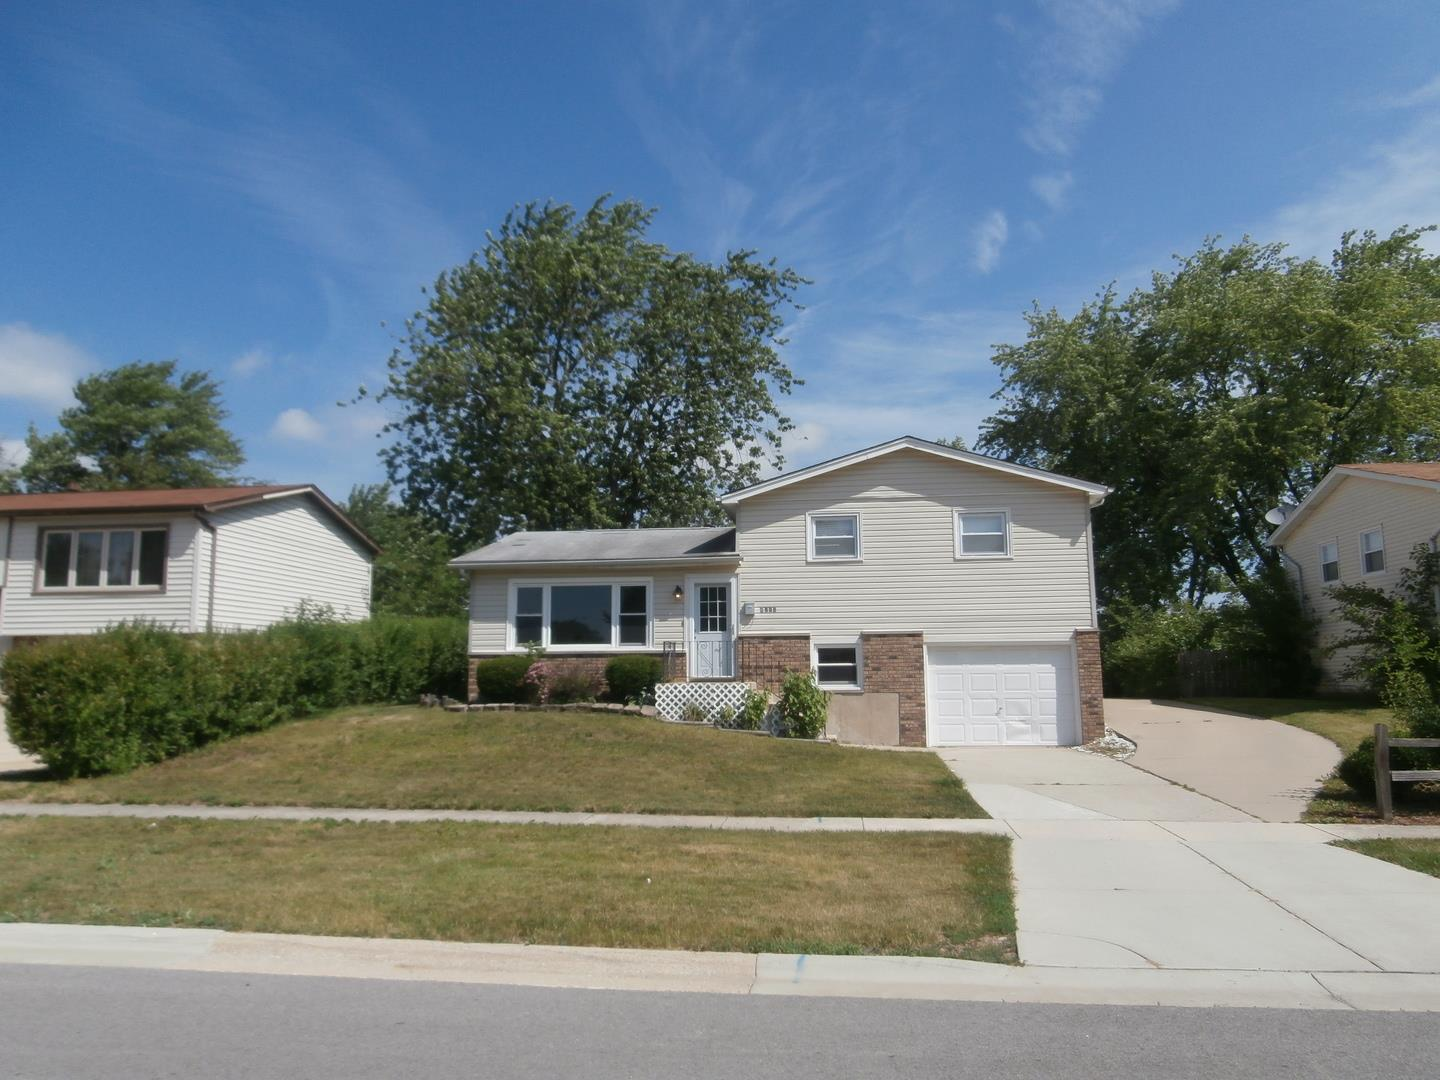 4190 189TH Place, Country Club Hills, IL 60478 - #: 10902953